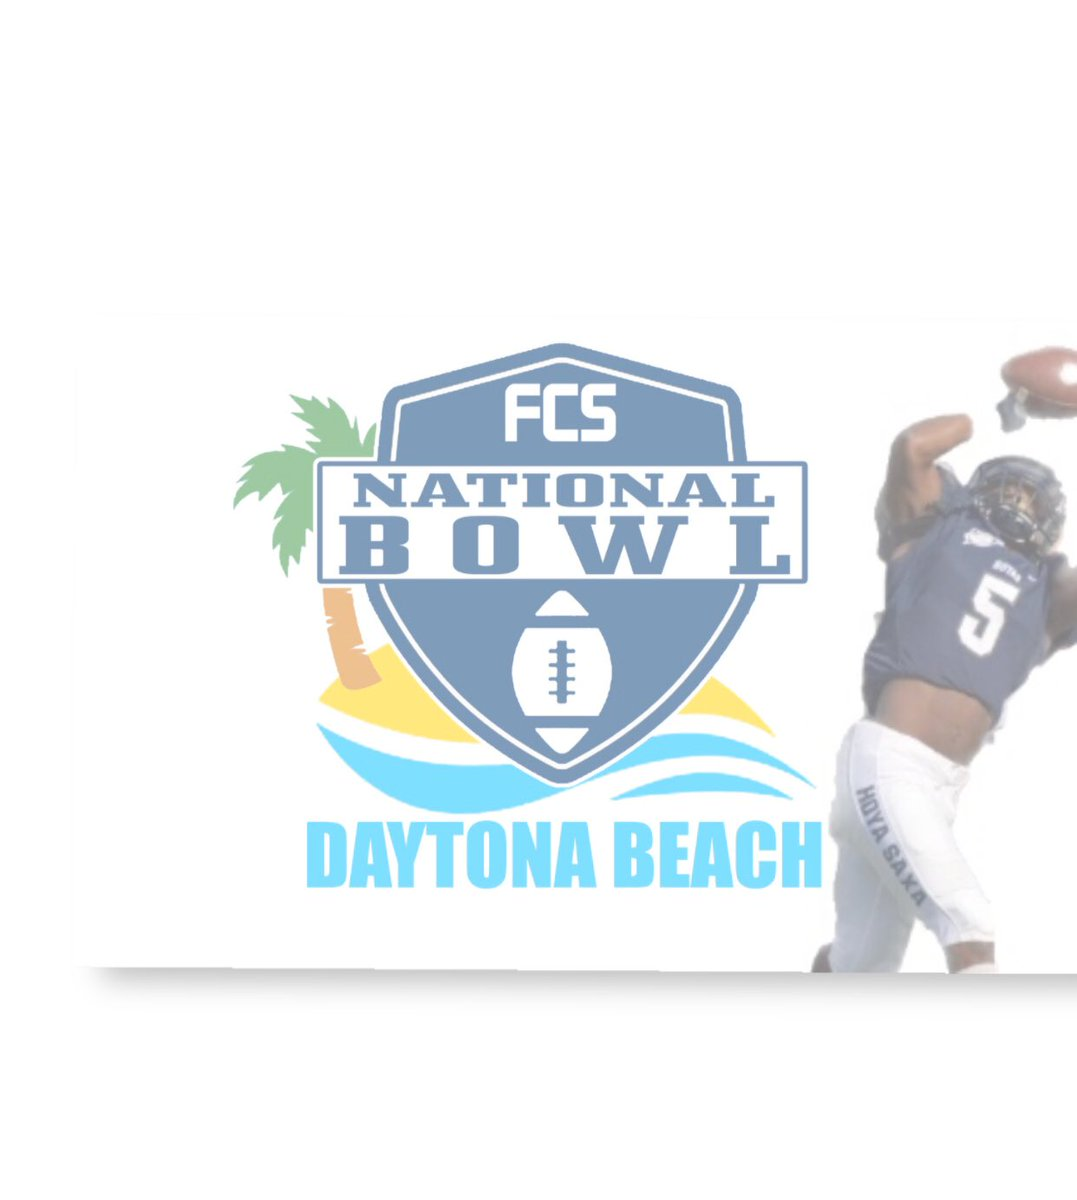 Catch me this weekend in Daytona playing in the FCS National Bowl #IGot5On5 @HoyasFB @PatriotLeague @FCSBOWL